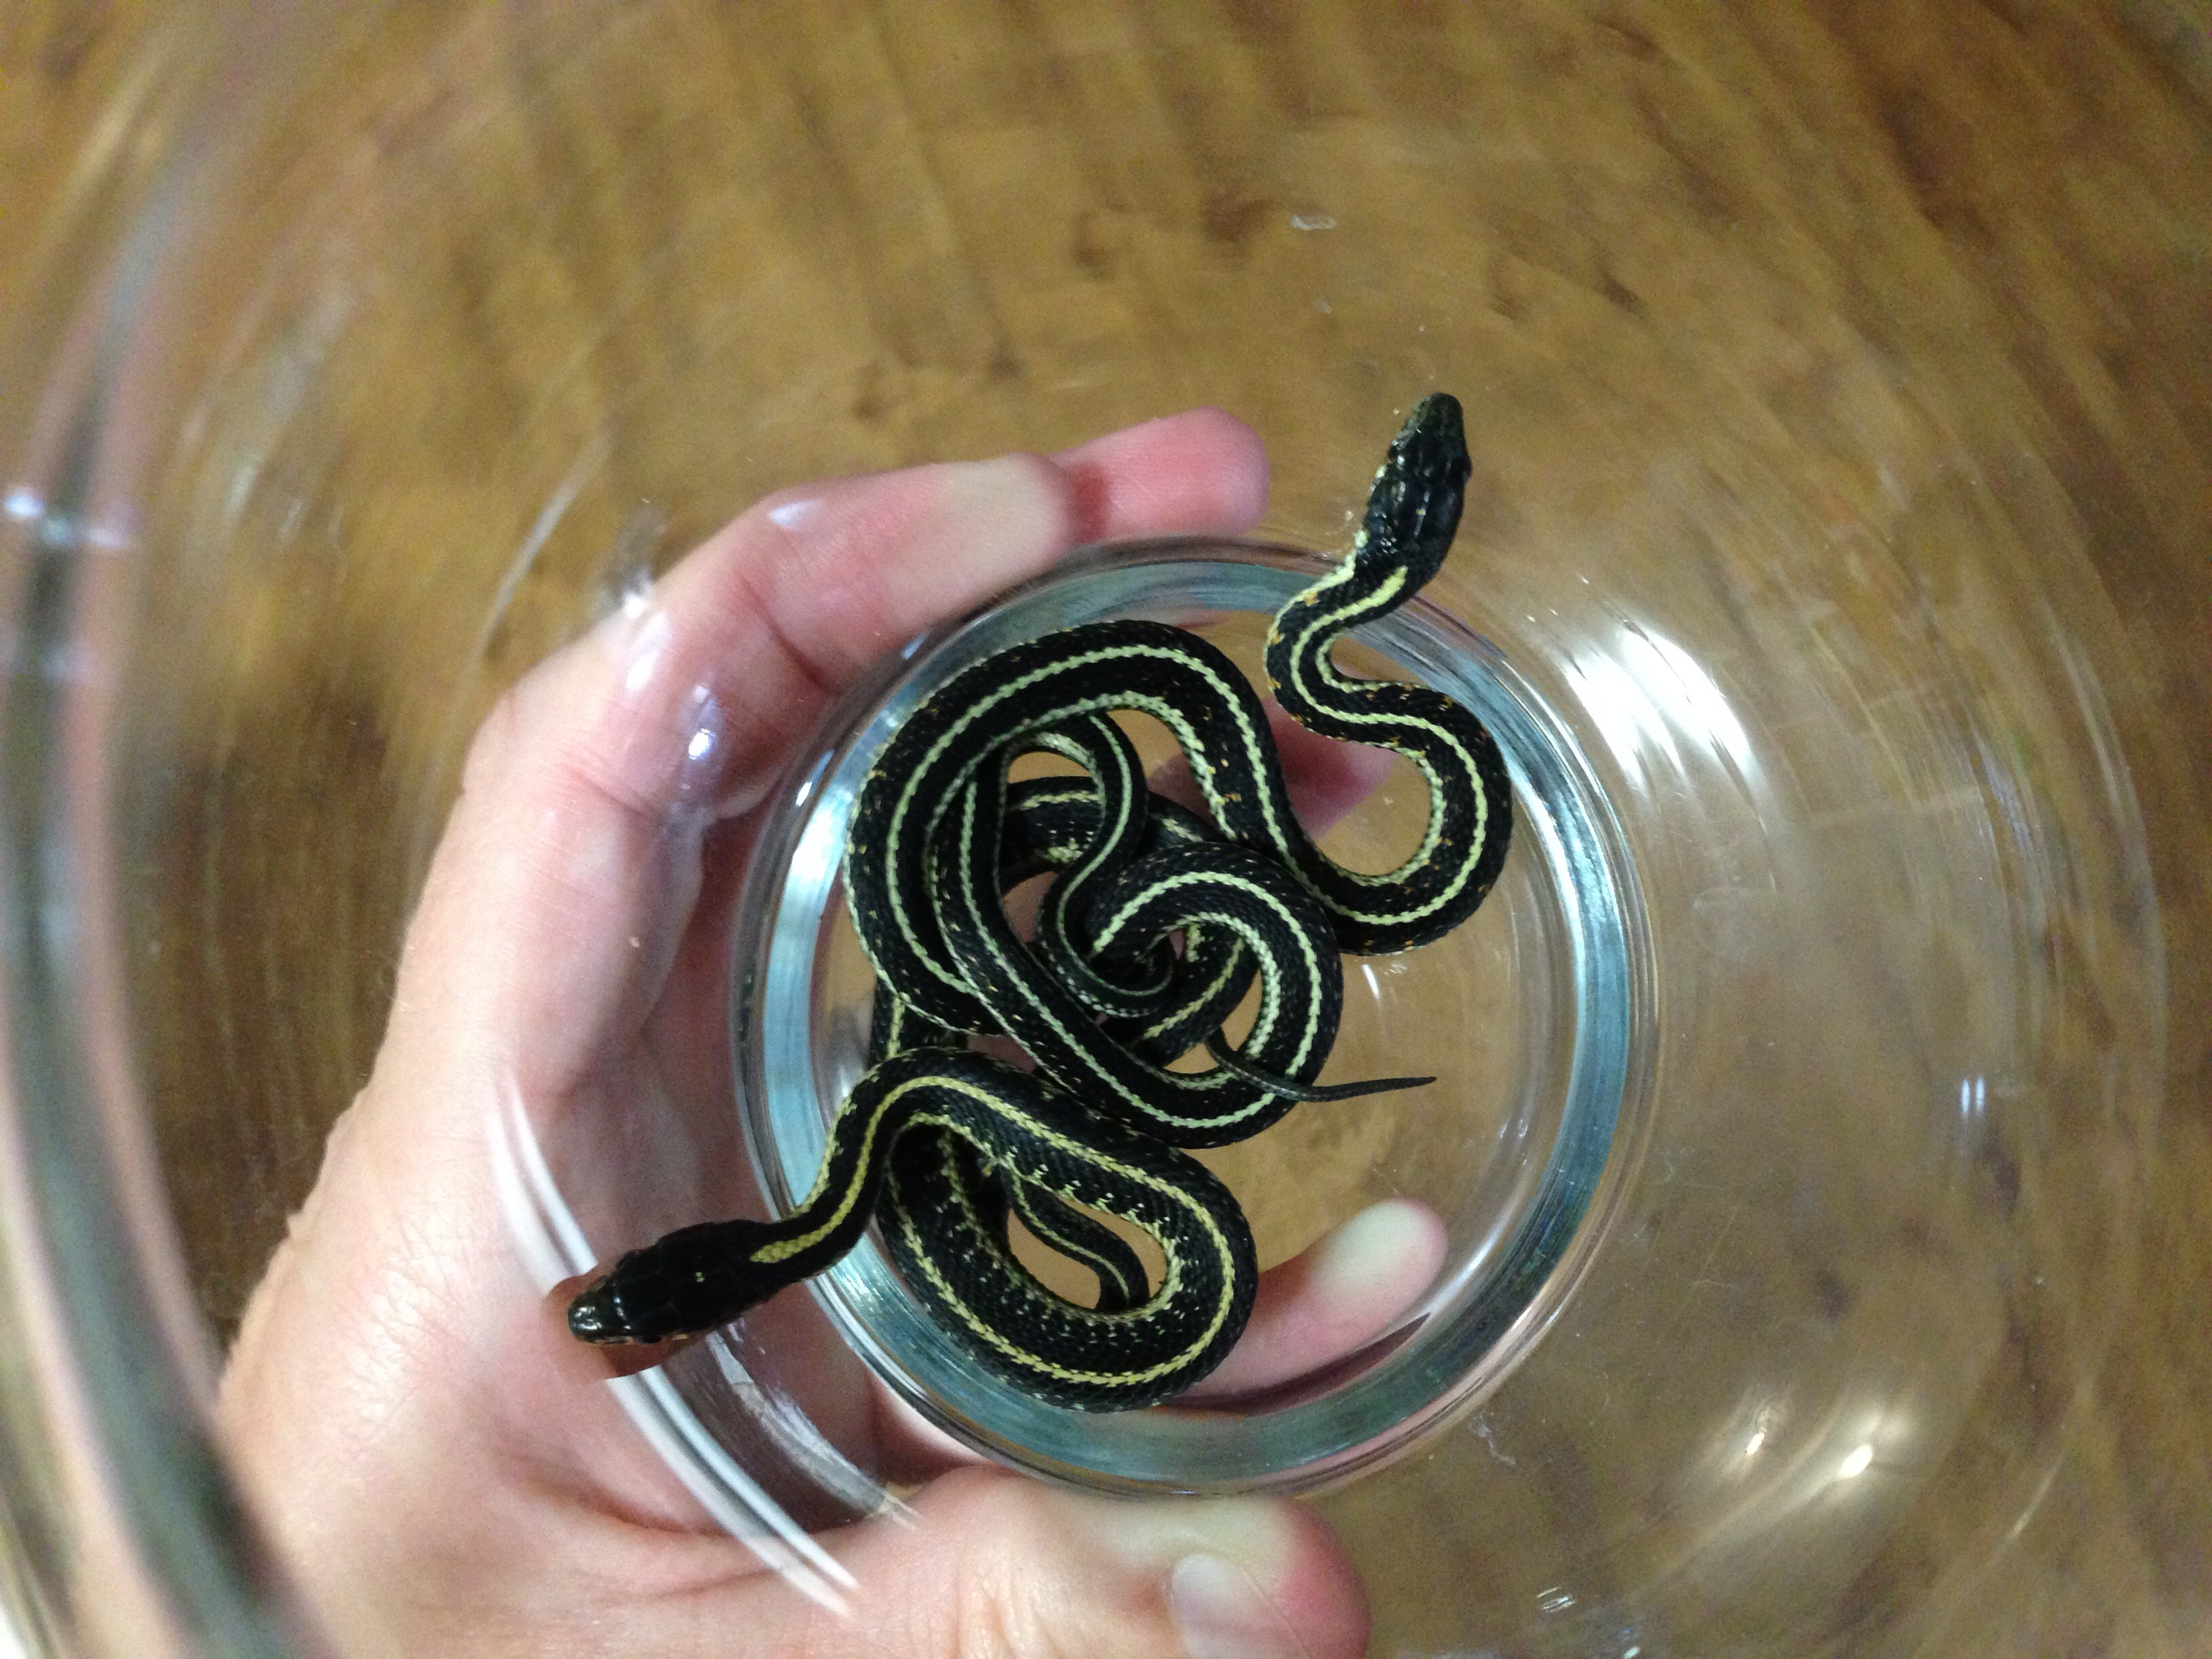 How to Take Care of Garter Snakes: 3 Steps